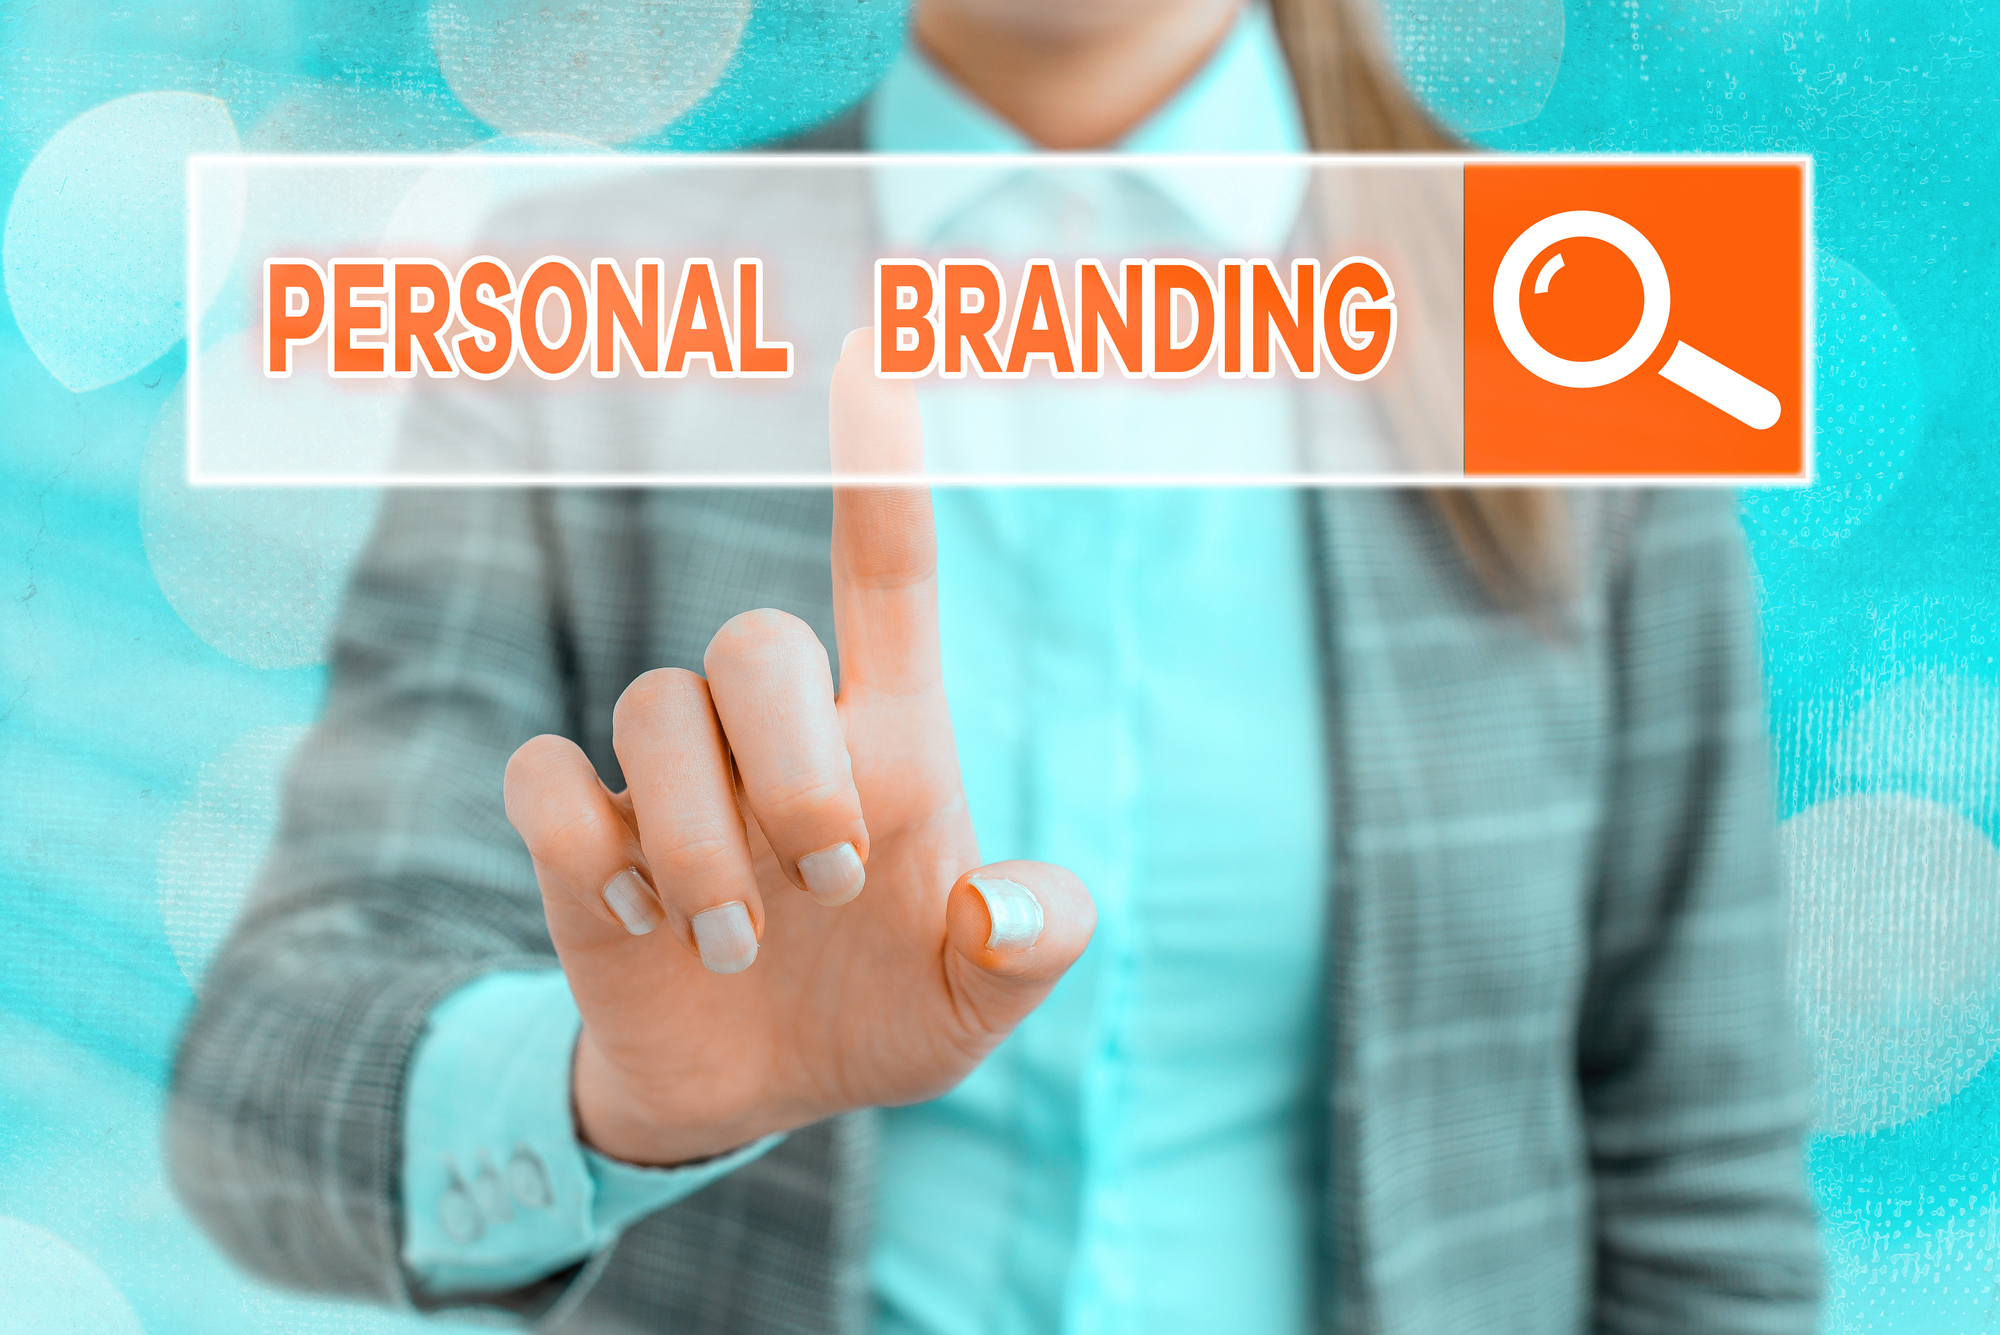 5 Pillars to Develop a Personal Brand Strategy that Ignites Authority and Influence